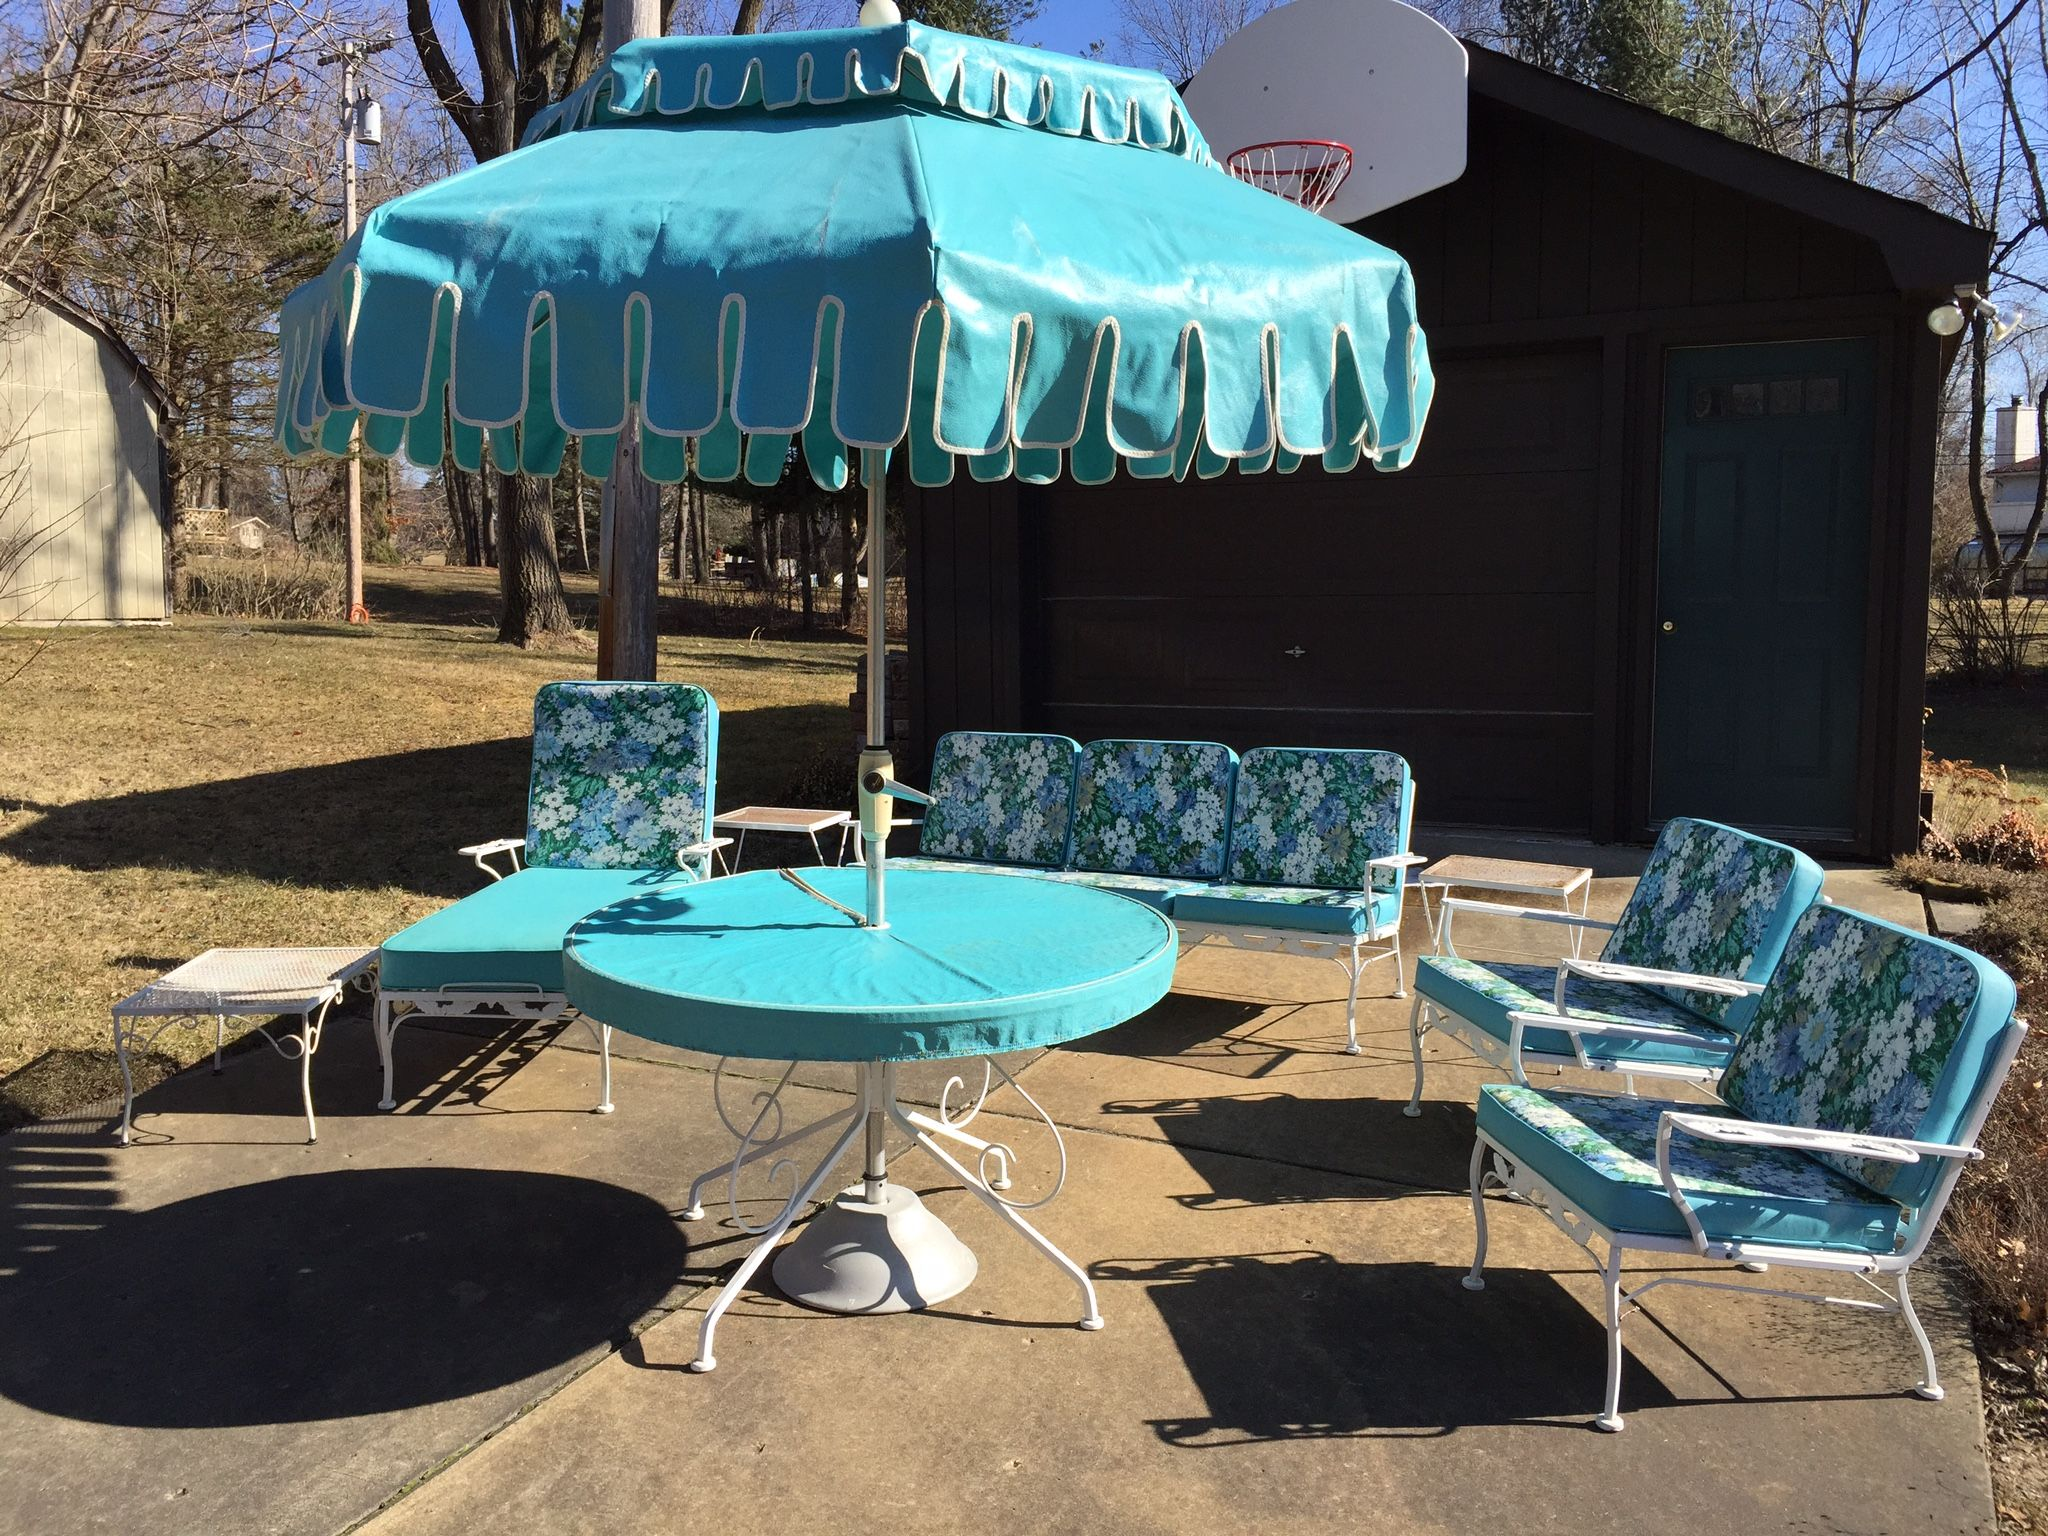 1960' Patio Set. Stored In Enclosed Porch 50 Years